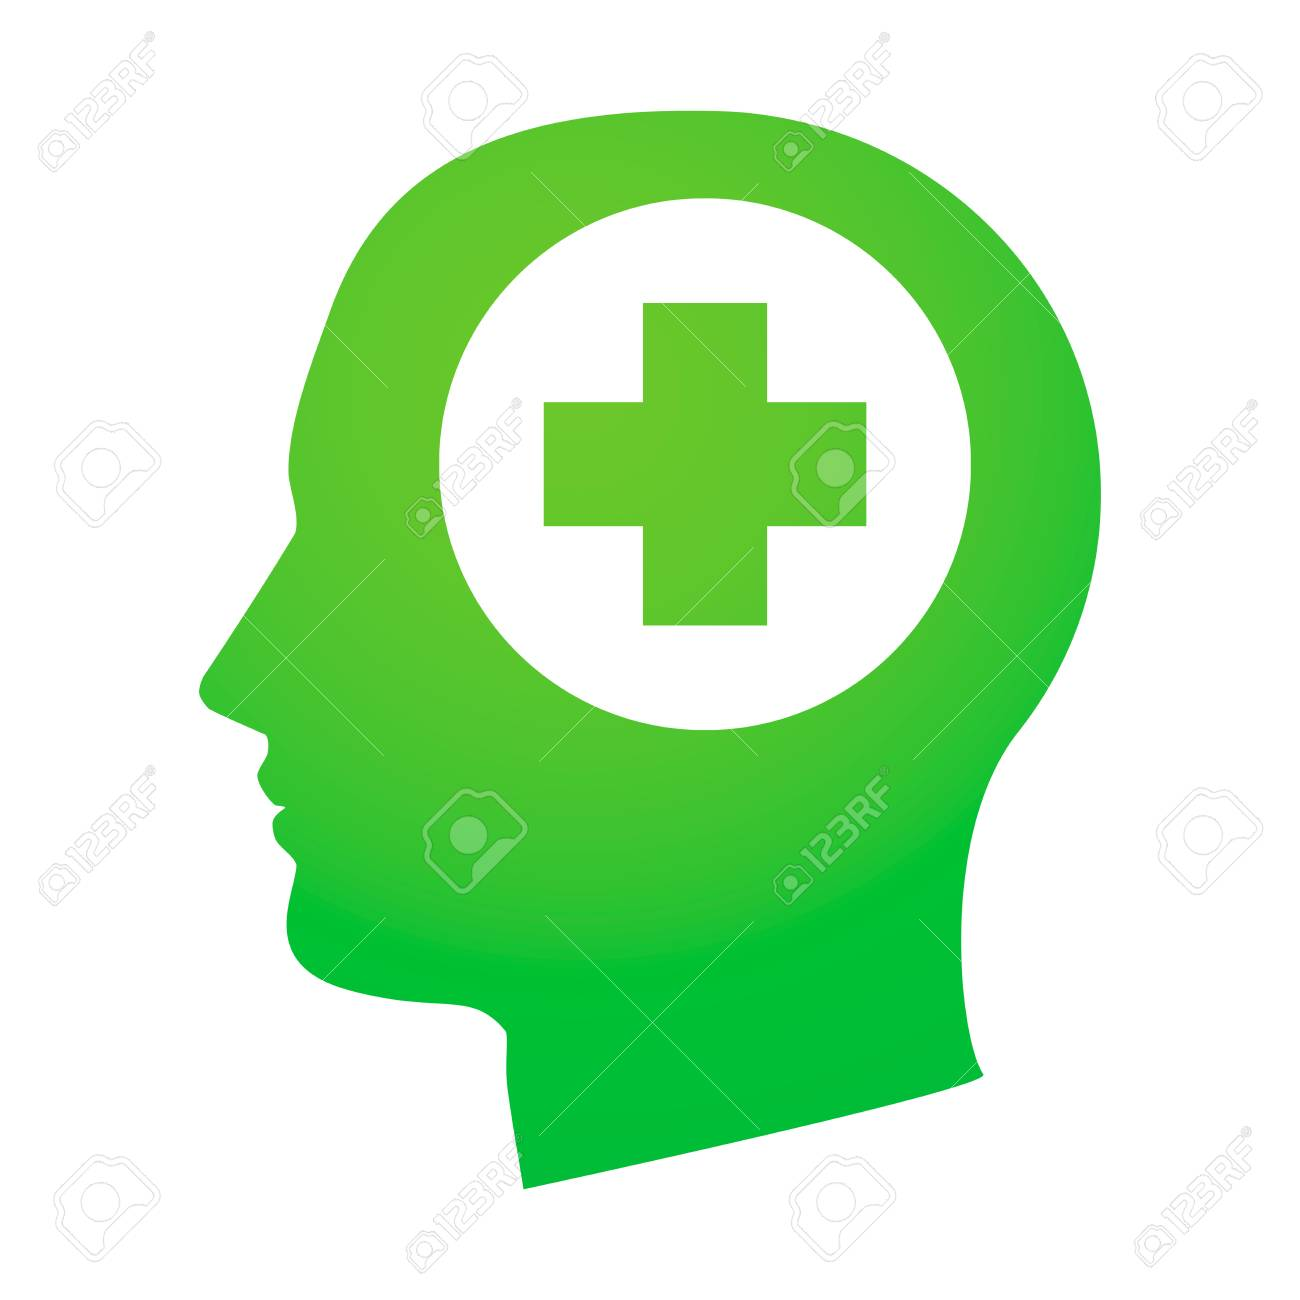 Illustration of an isolated head with an icon Stock Vector - 25434110